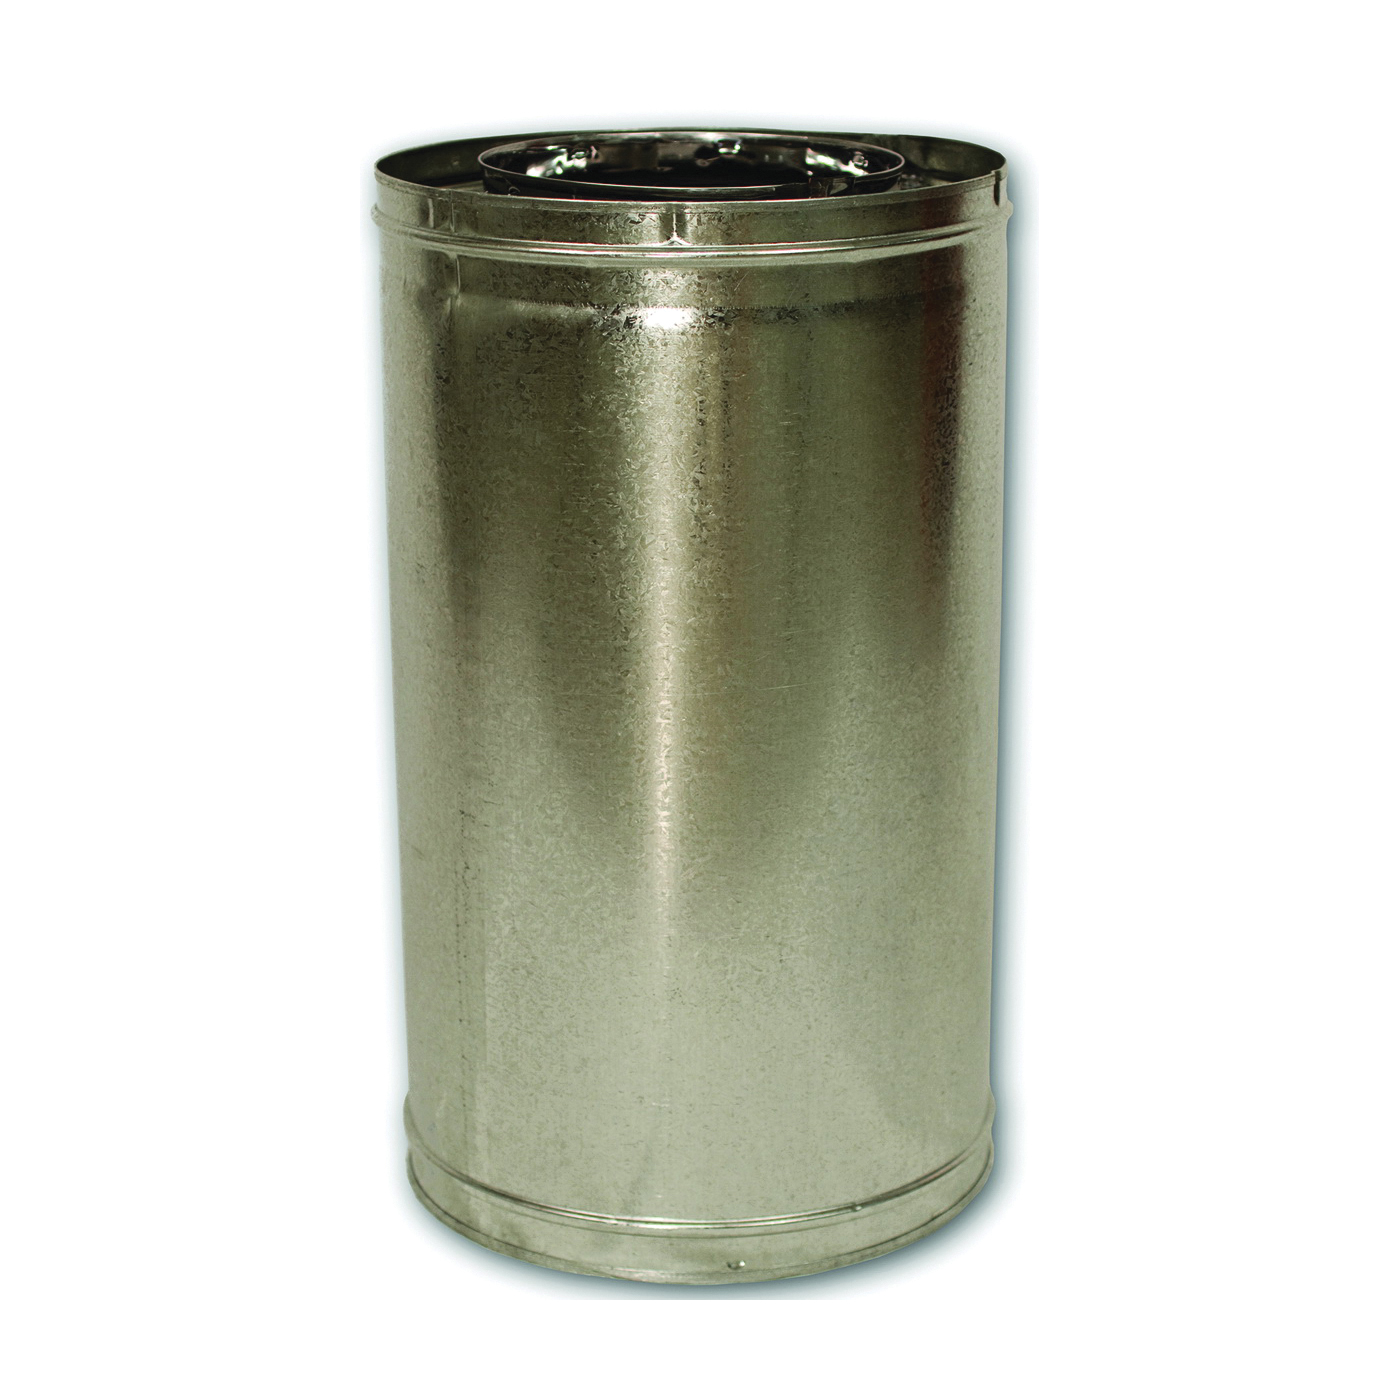 Picture of Comfort Flame 18-8DM Chimney Pipe, 12-3/8 in OD, 18 in L, Galvanized Steel